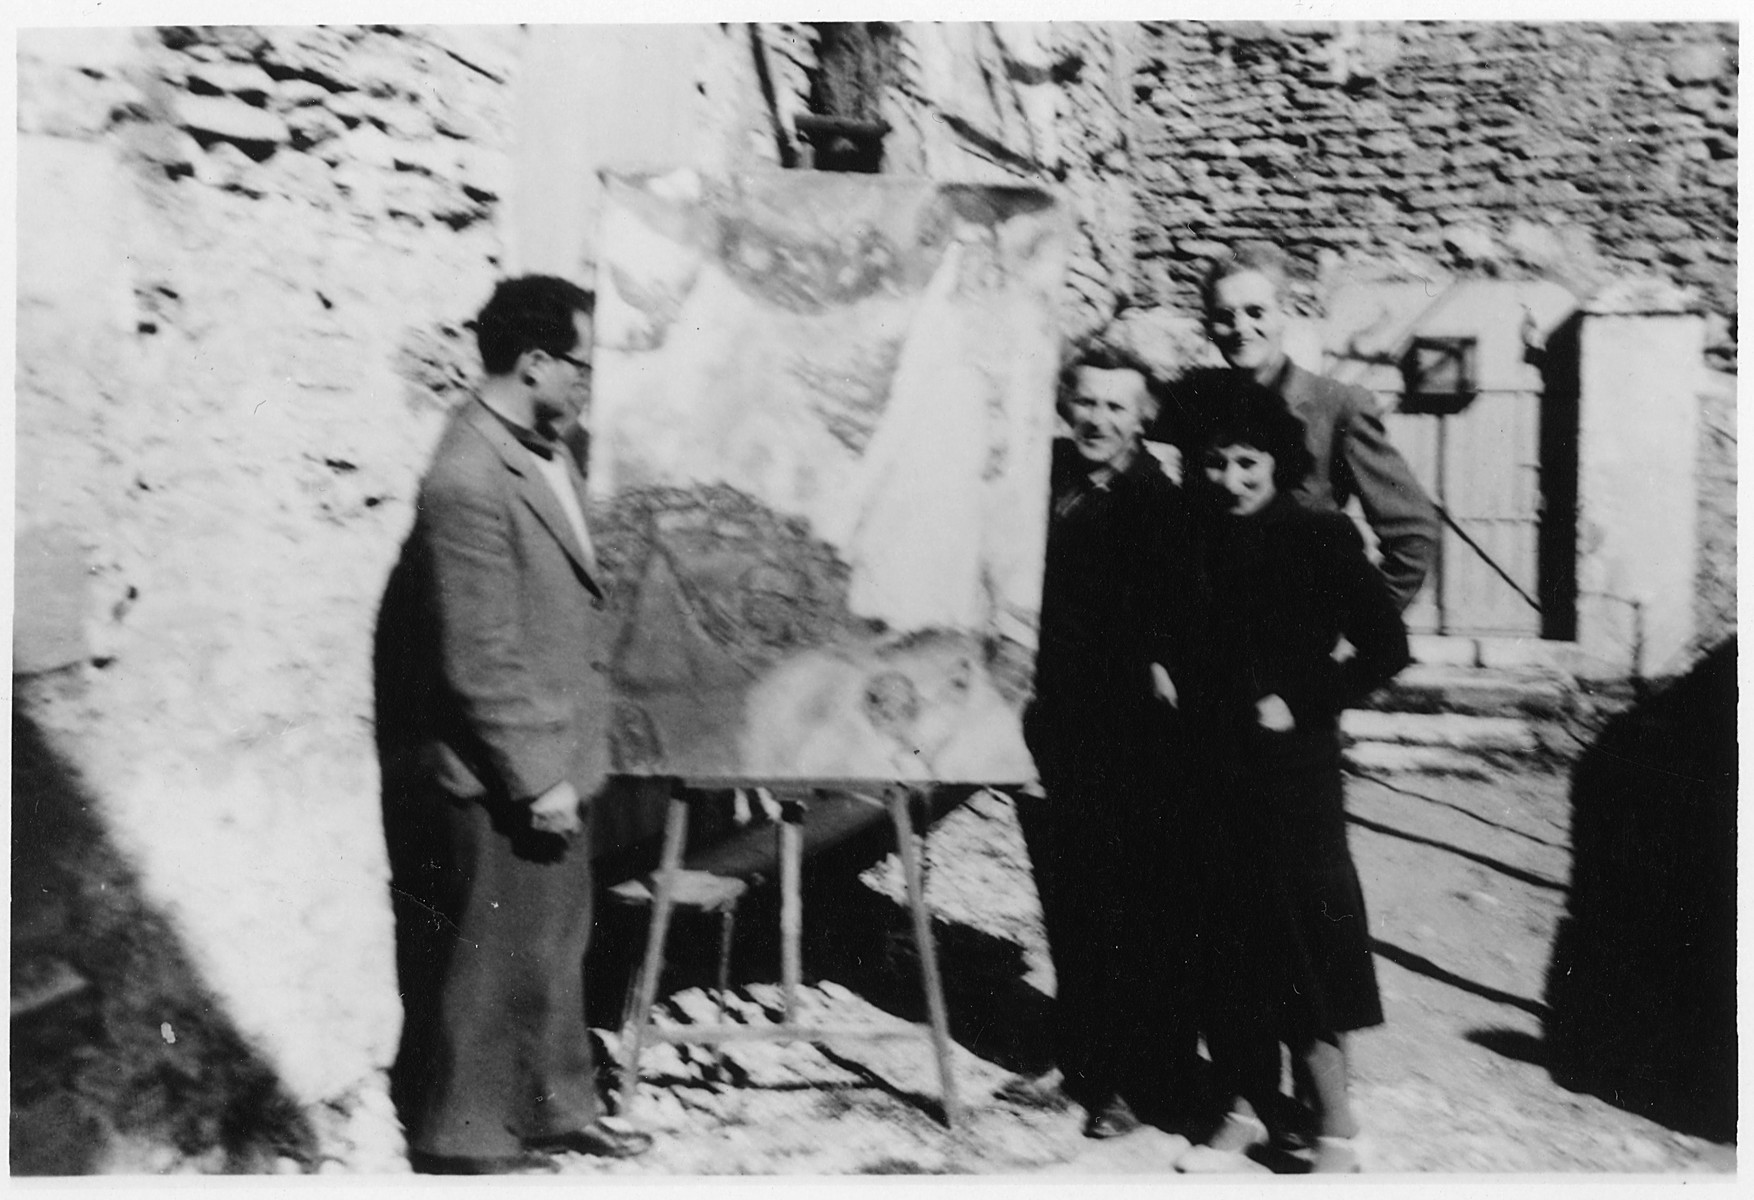 Varian Fry (left) views a Chagall painting outside the artist's home in Gordes.  Pictured from left to right are Varian Fry, Marc Chagall, Bella Chagall, and Hiram Bingham (behind Bella).